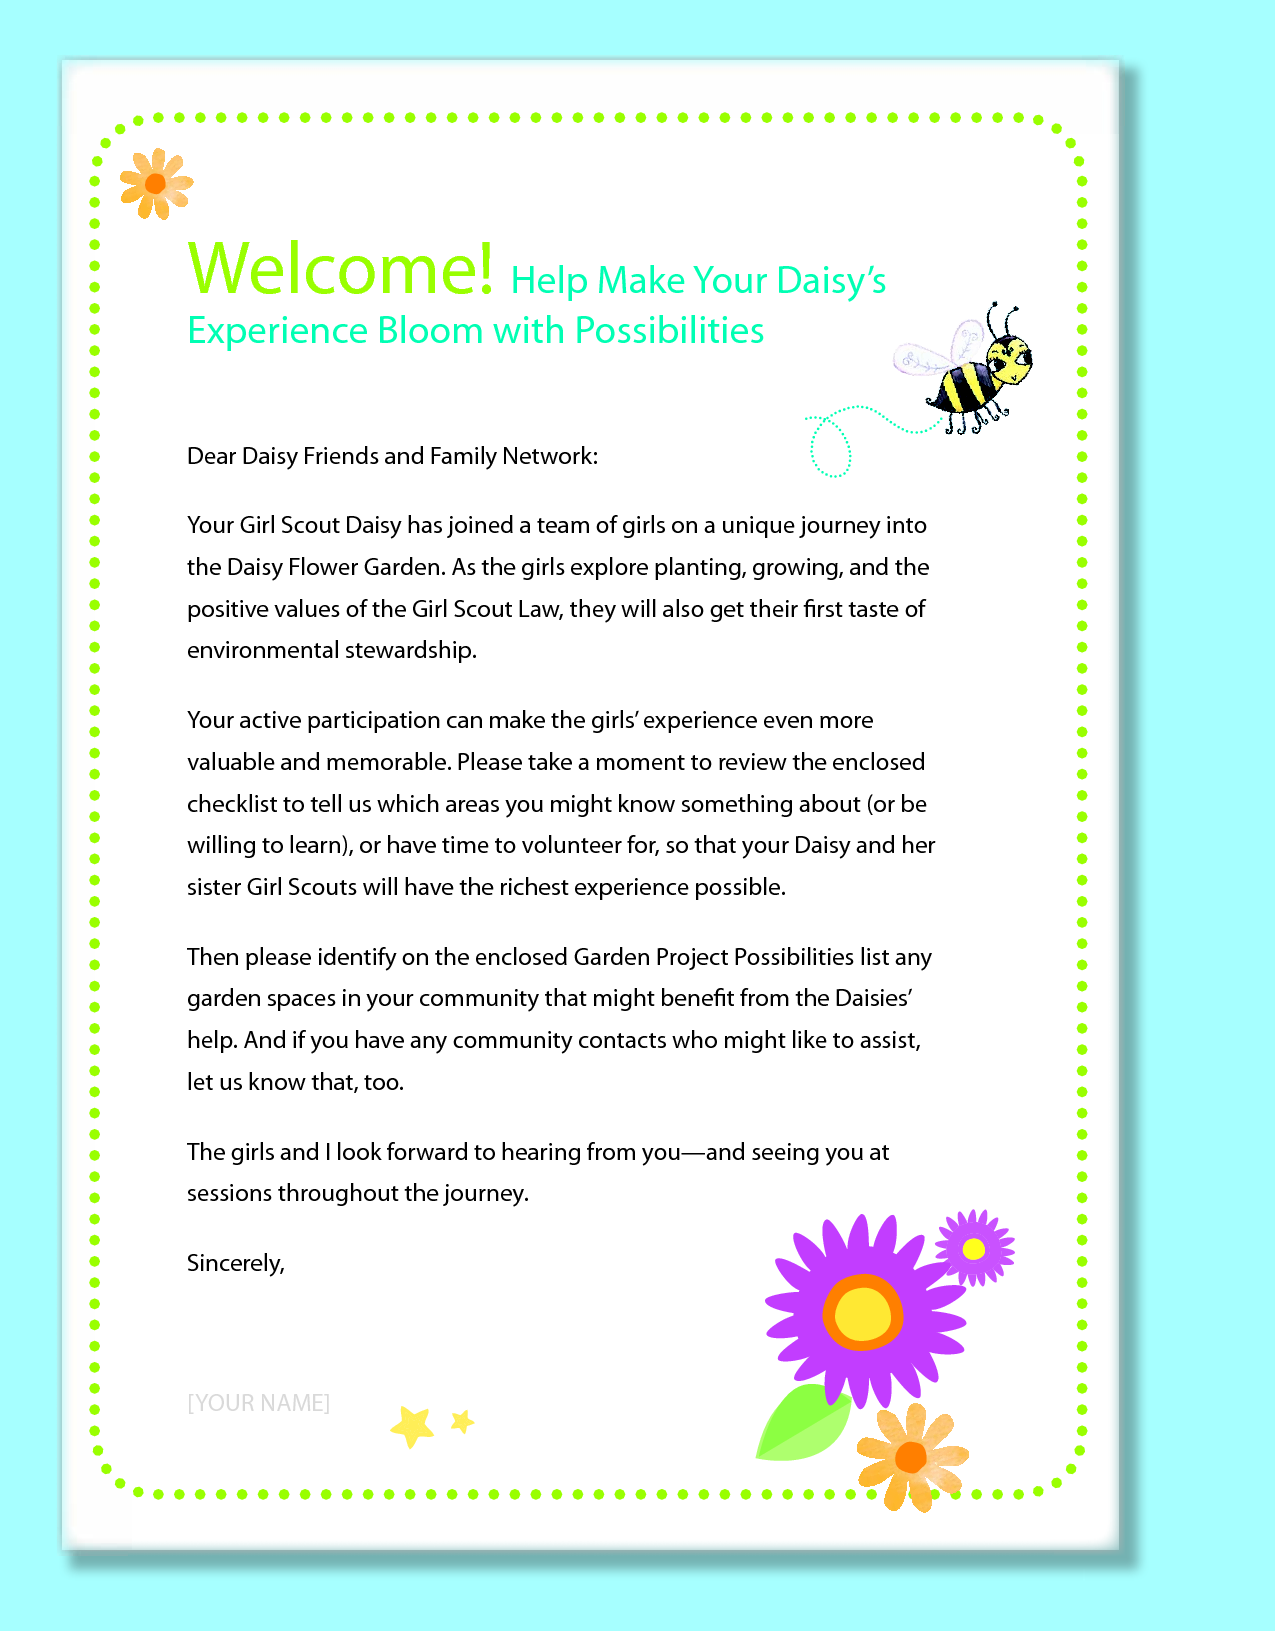 Daisy girl scout newsletter template introduction to parents daisy girl scout newsletter template introduction to parents letter template izmirmasajfo